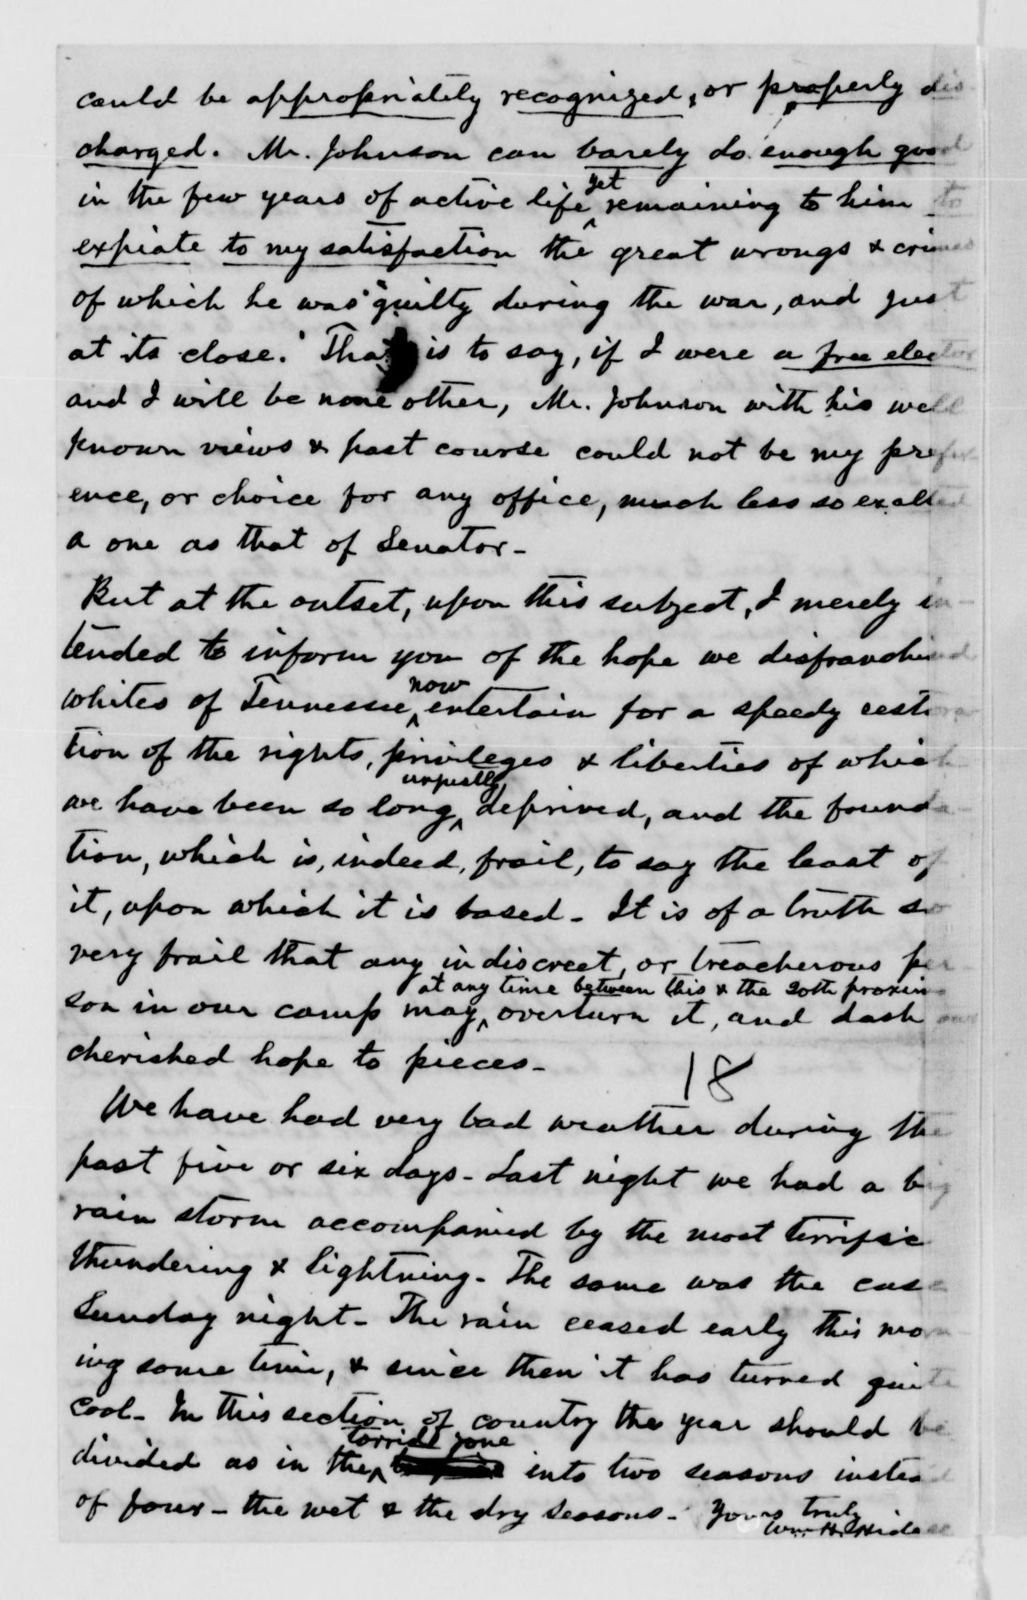 Alexander Hamilton Stephens Papers: General Correspondence, 1784-1886; 1869, Mar. 6-May 19